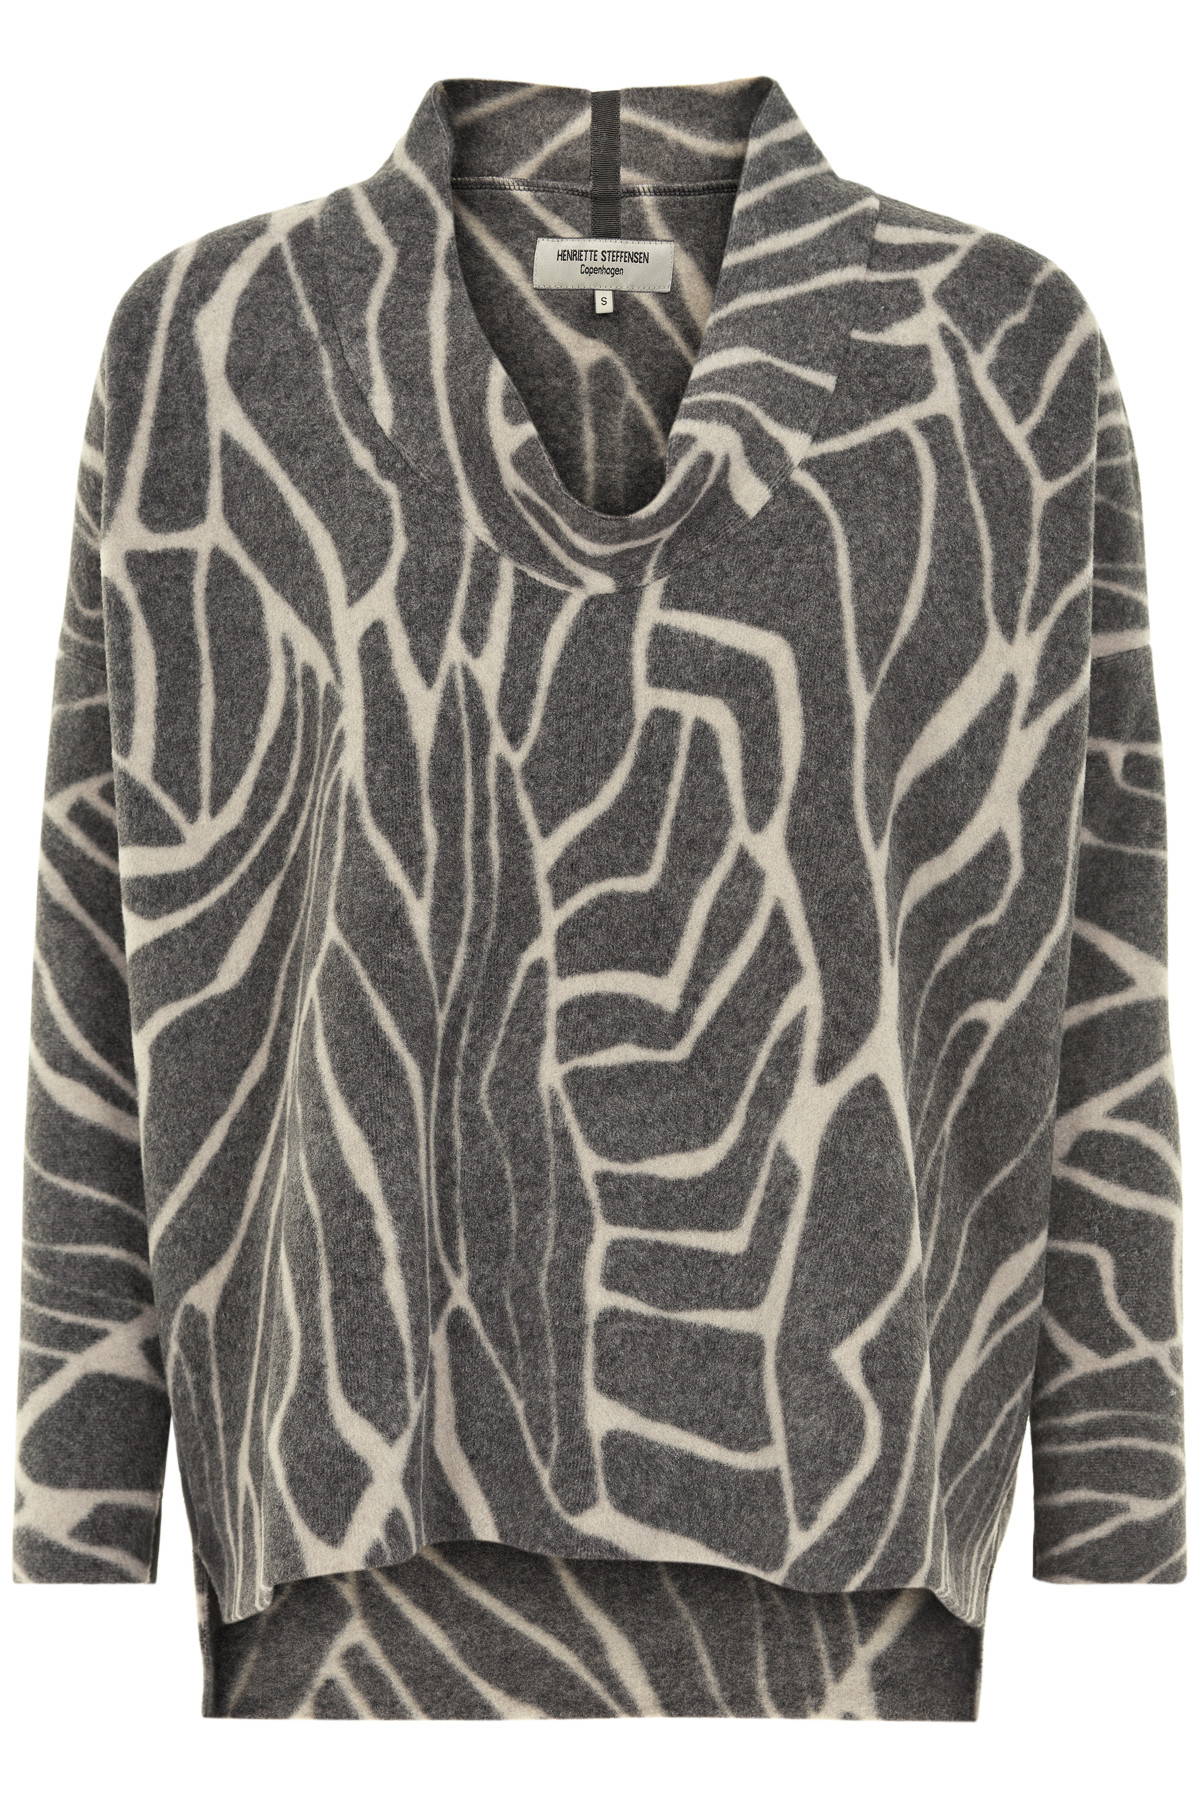 Image of   HENRIETTE STEFFENSEN Copenhagen 1306 SWEATER LEAVES (Leaves, S)